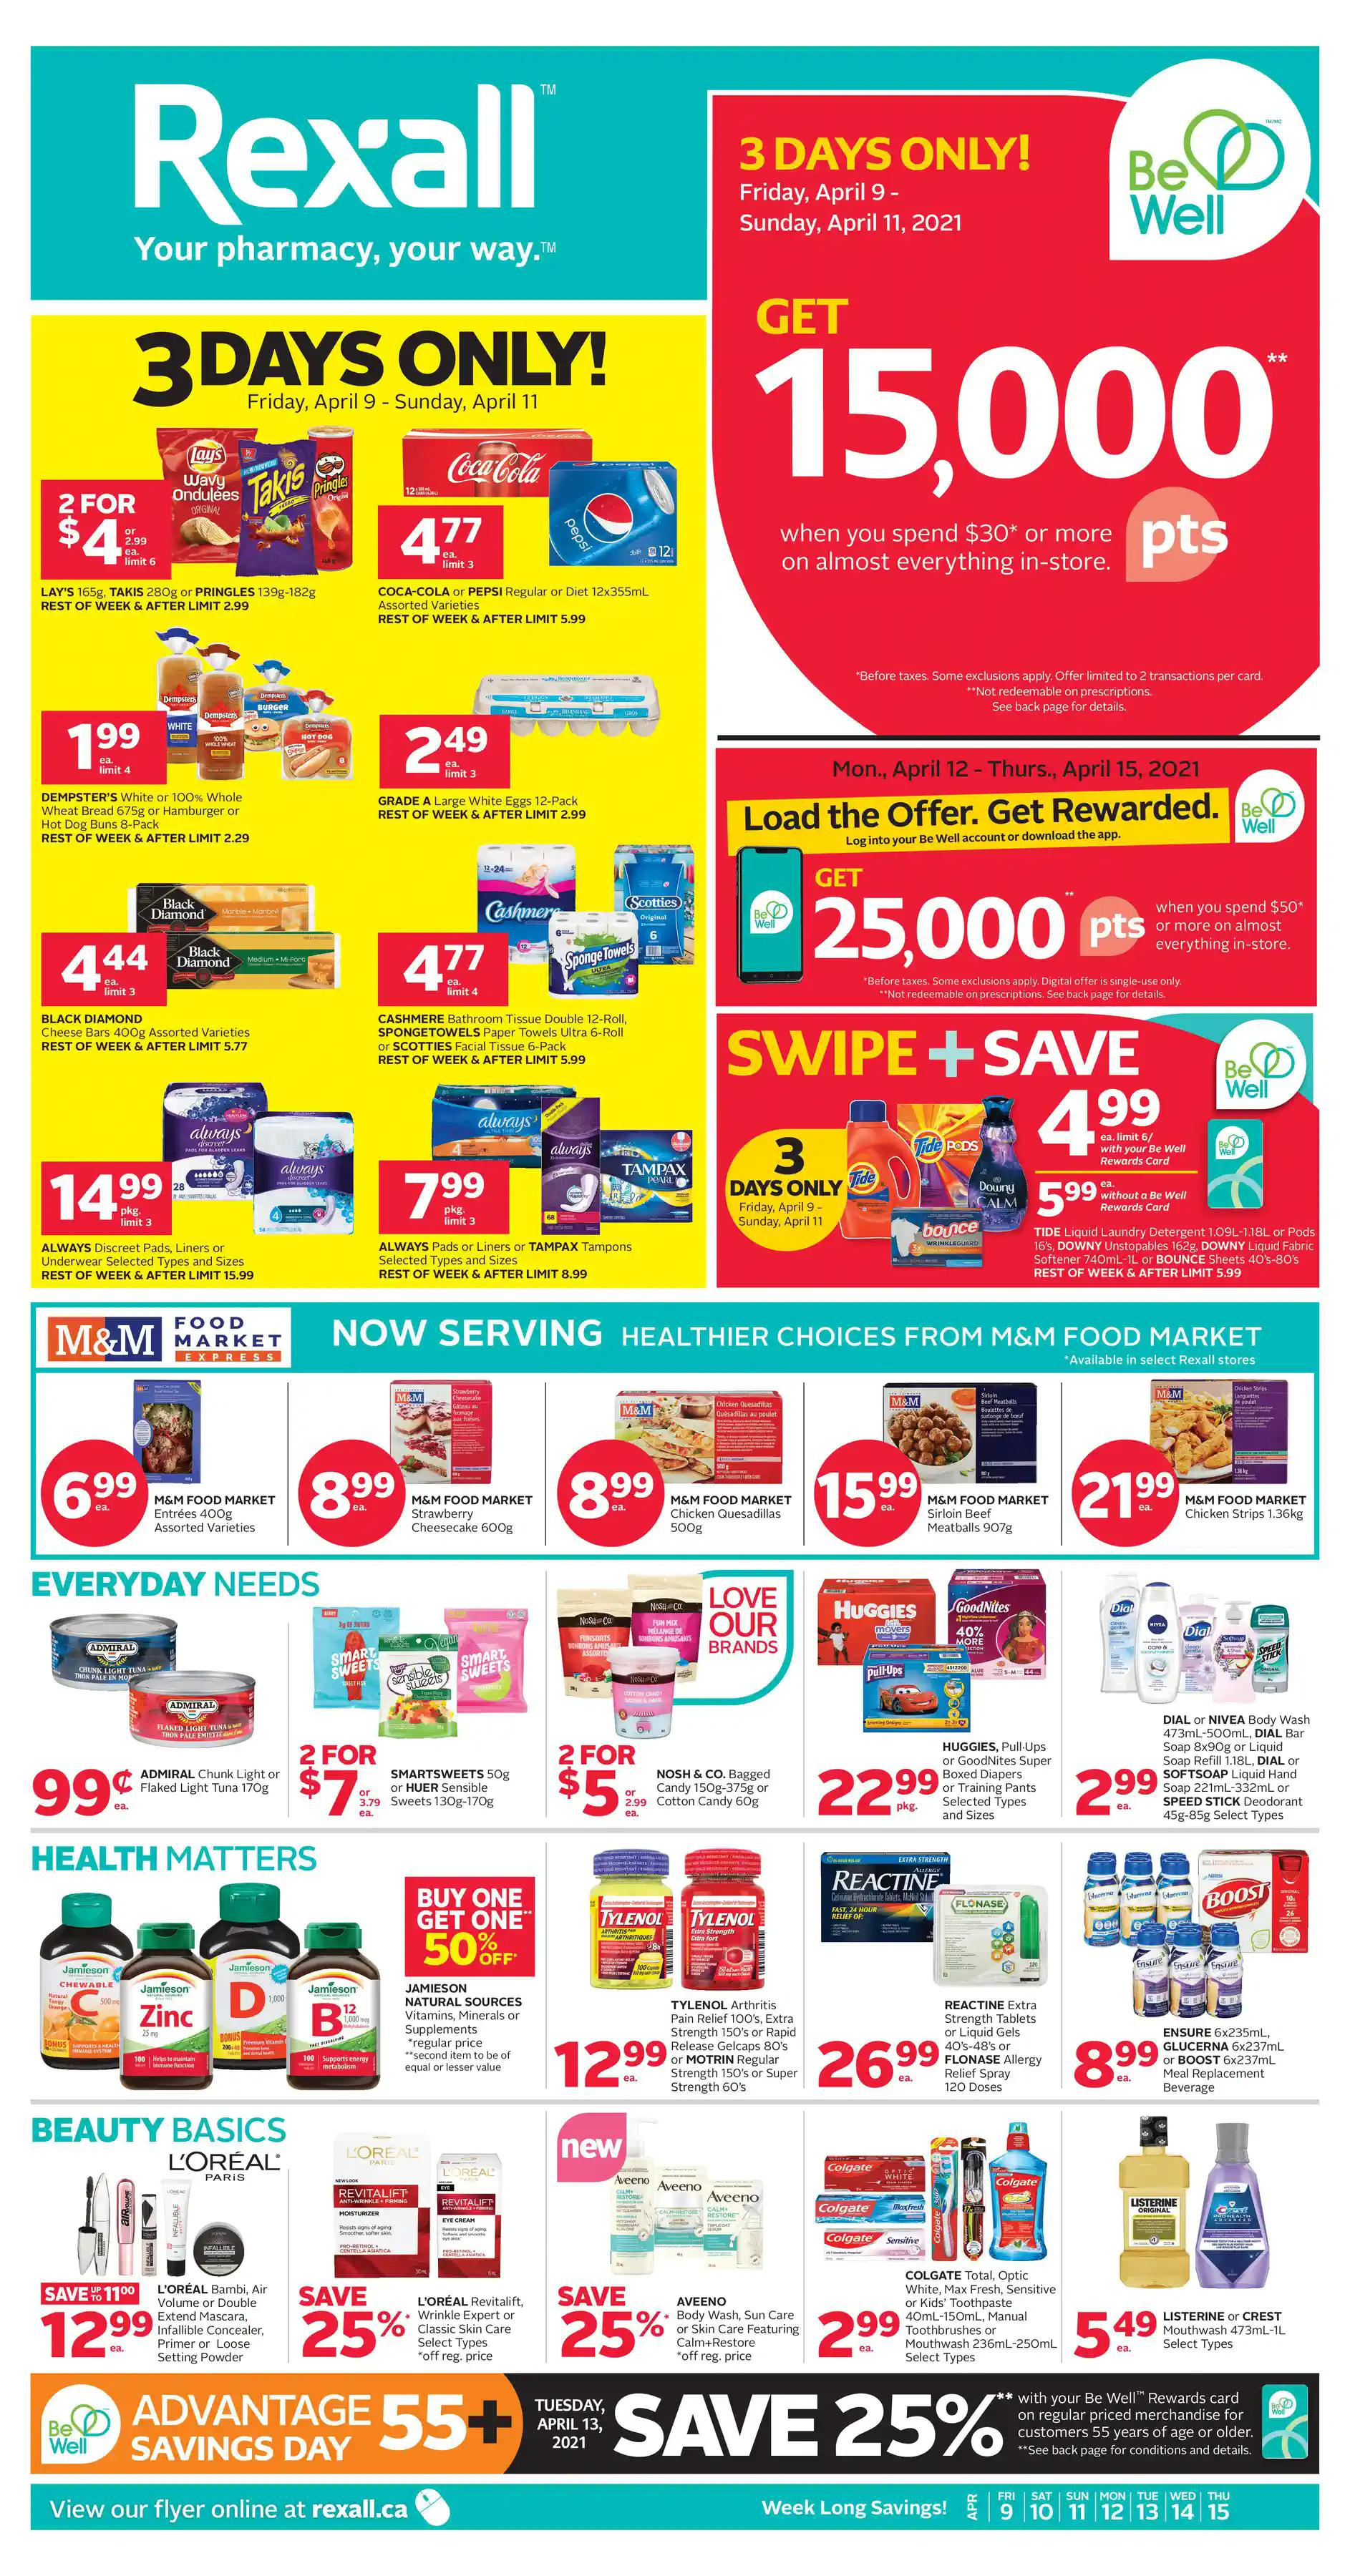 Rexall - Weekly Flyer Specials